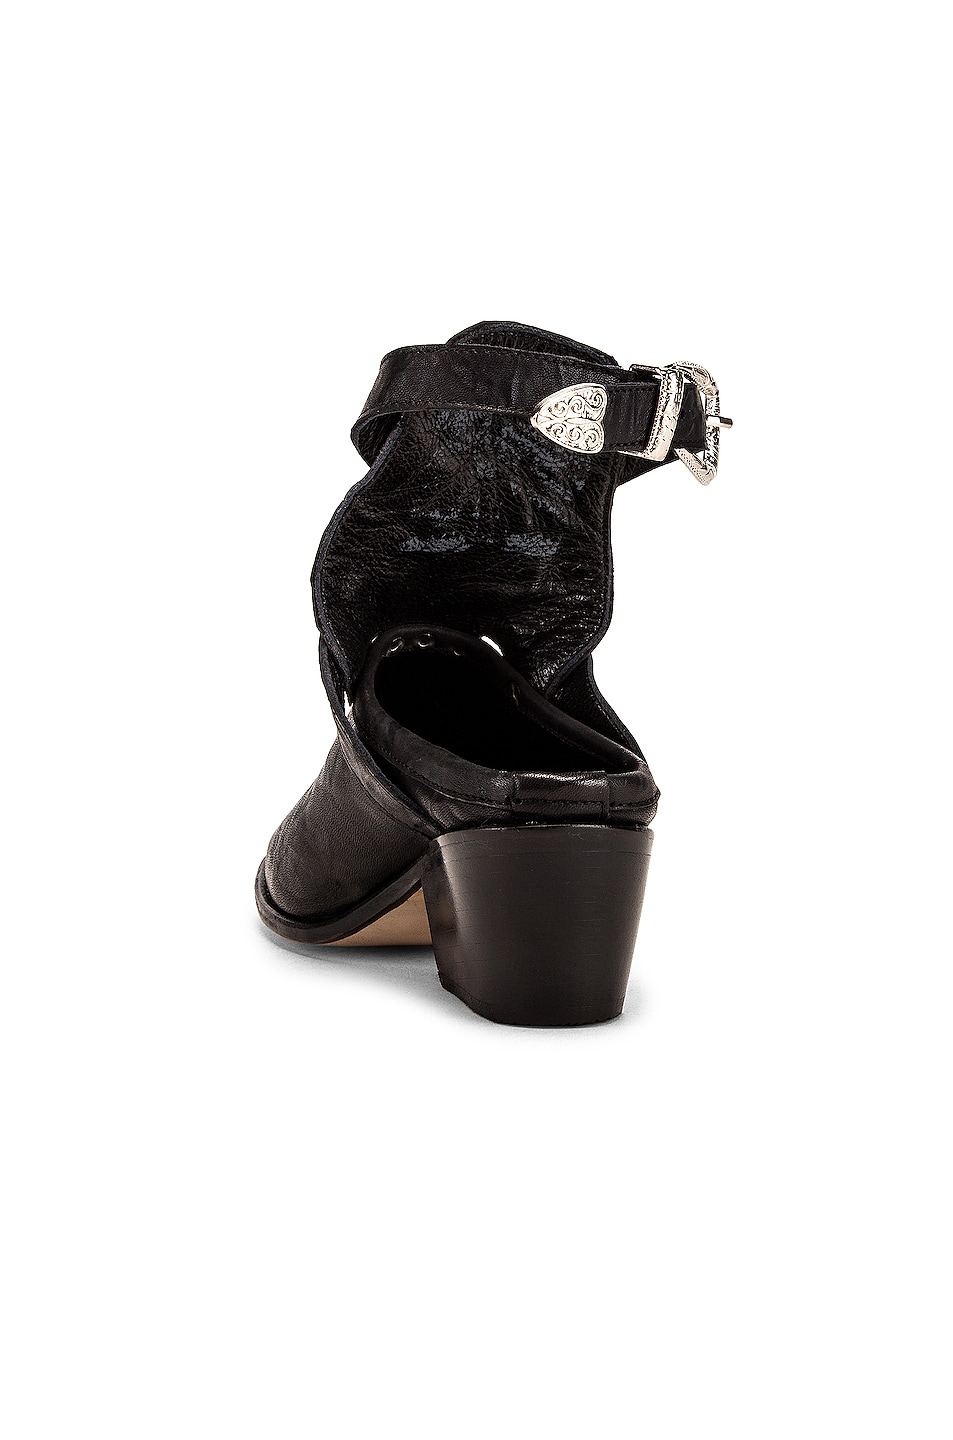 Image 3 of Zeynep Arcay Leather Cowboy Sobo Ankle Boots in Black